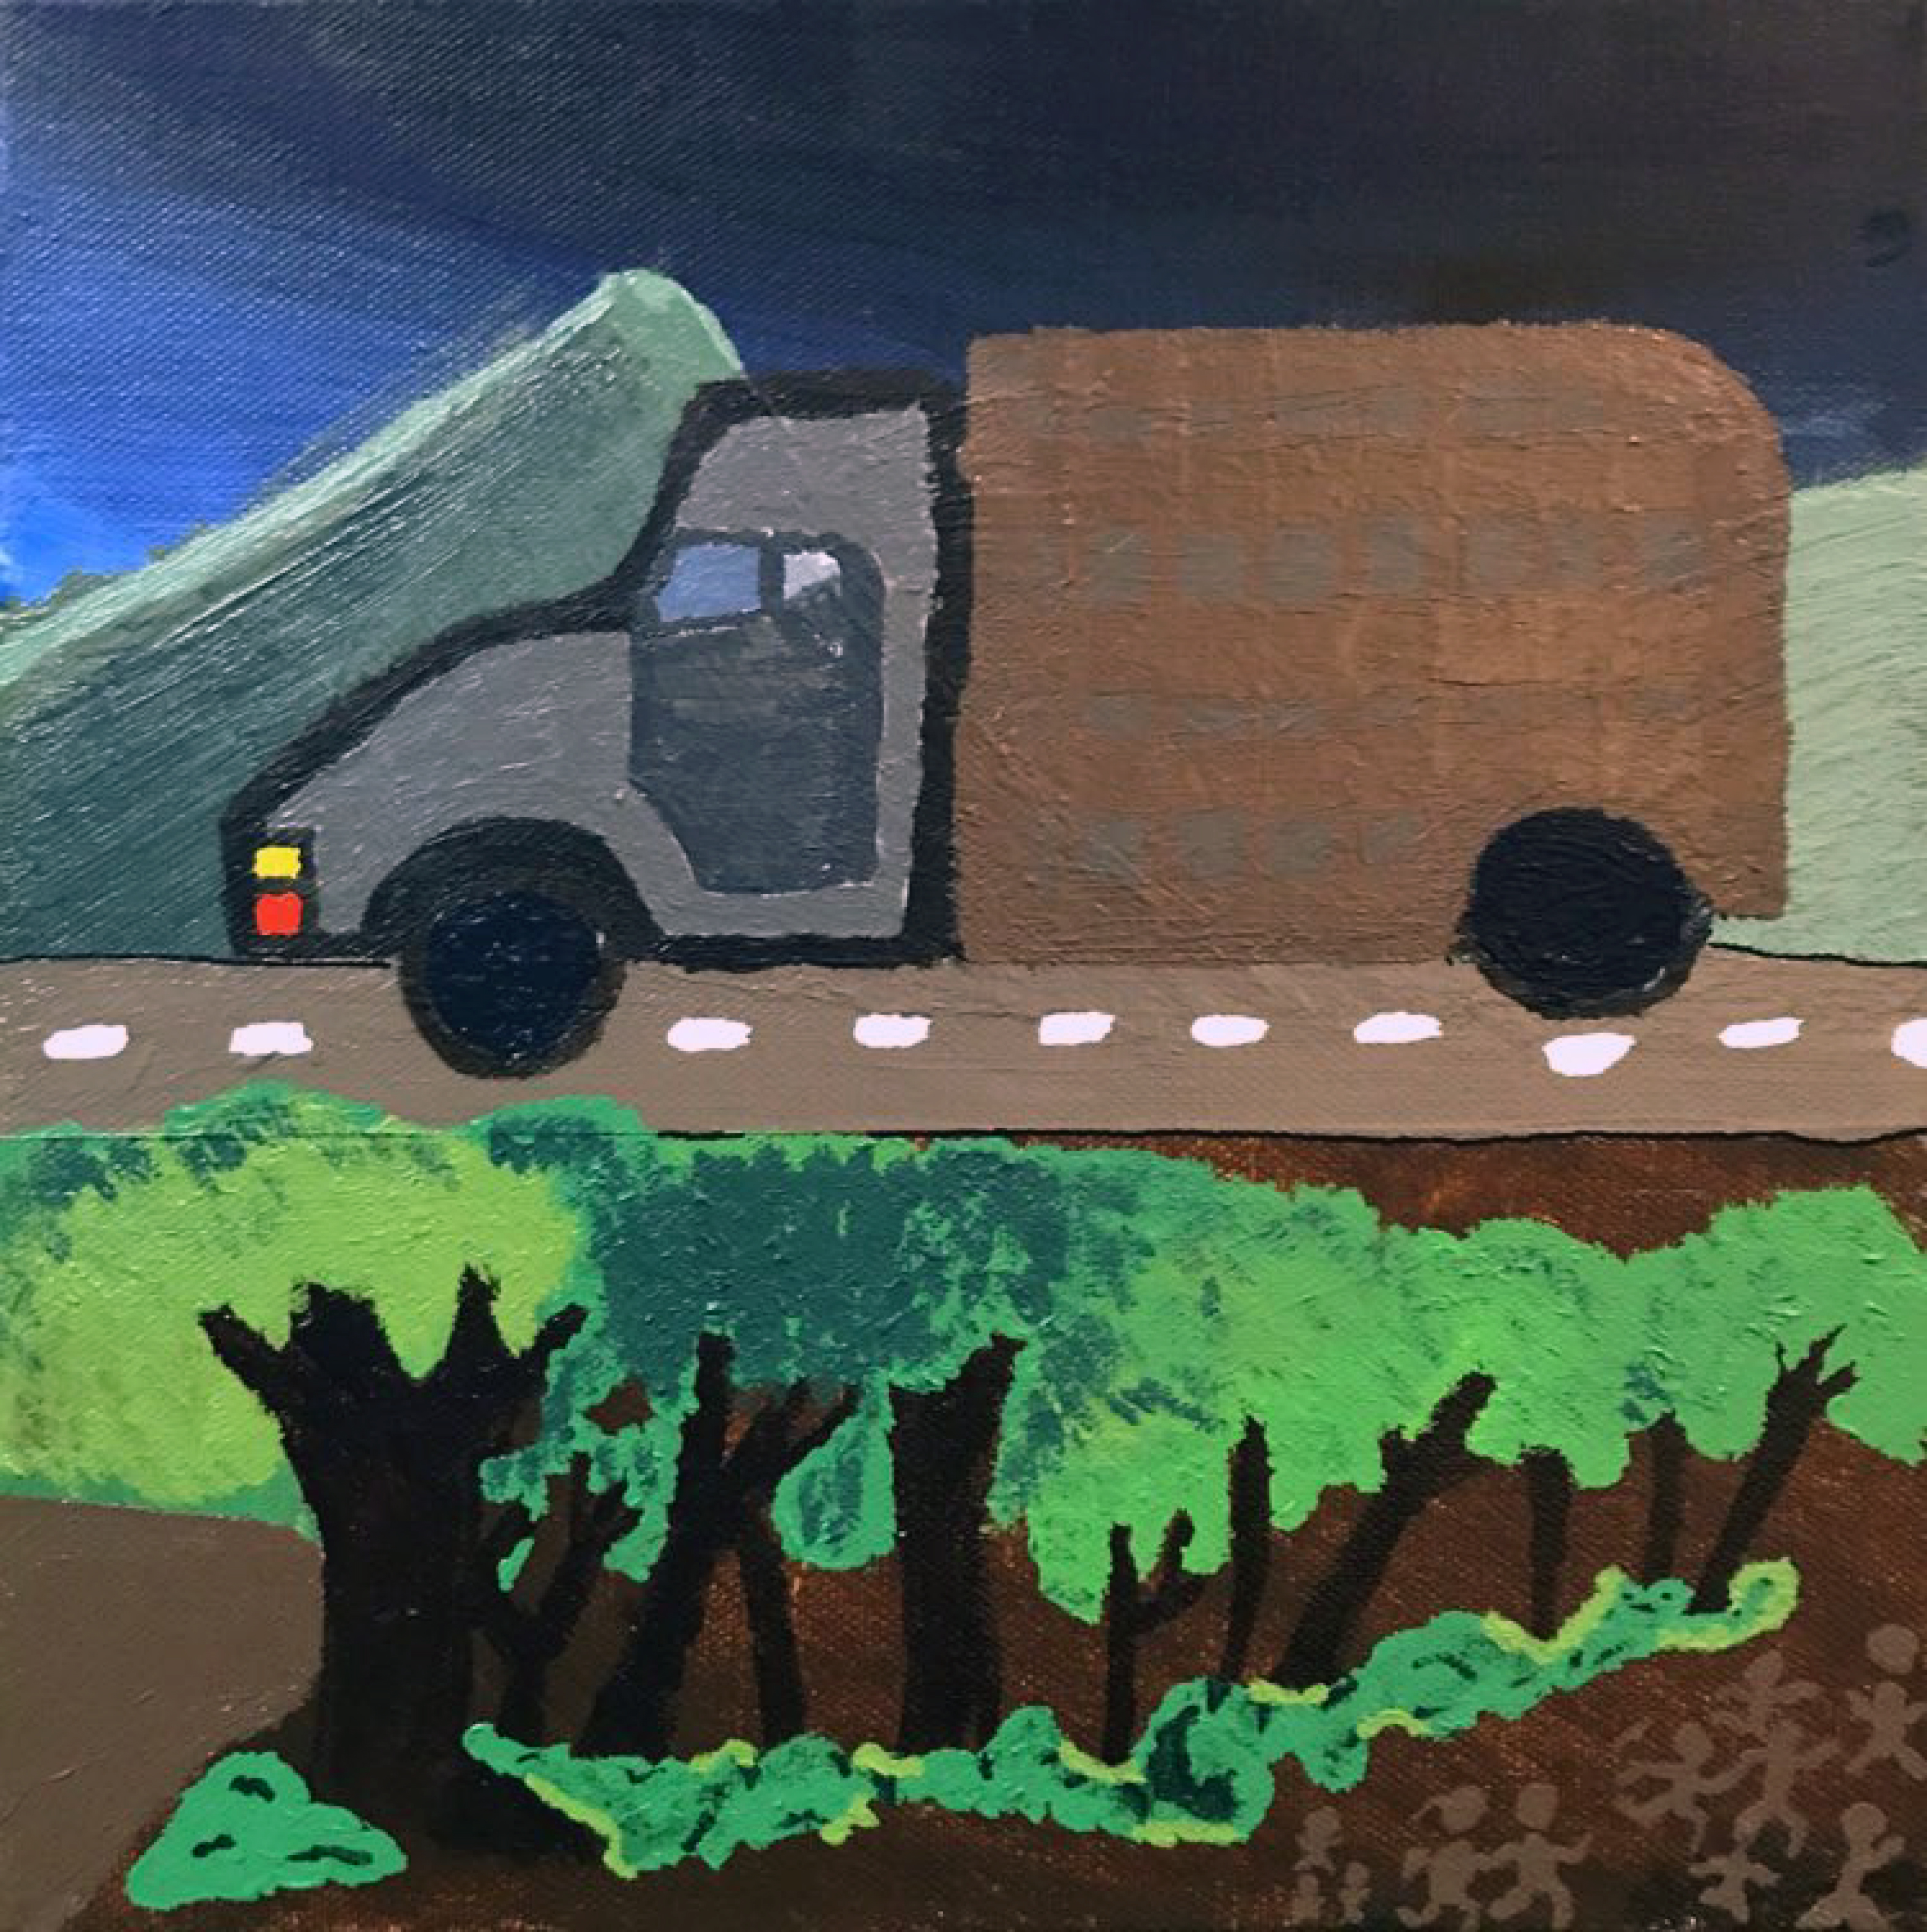 A truck drives down a road in front of mountains at night. Small figures are running on the bottom righthand corner of the painting.